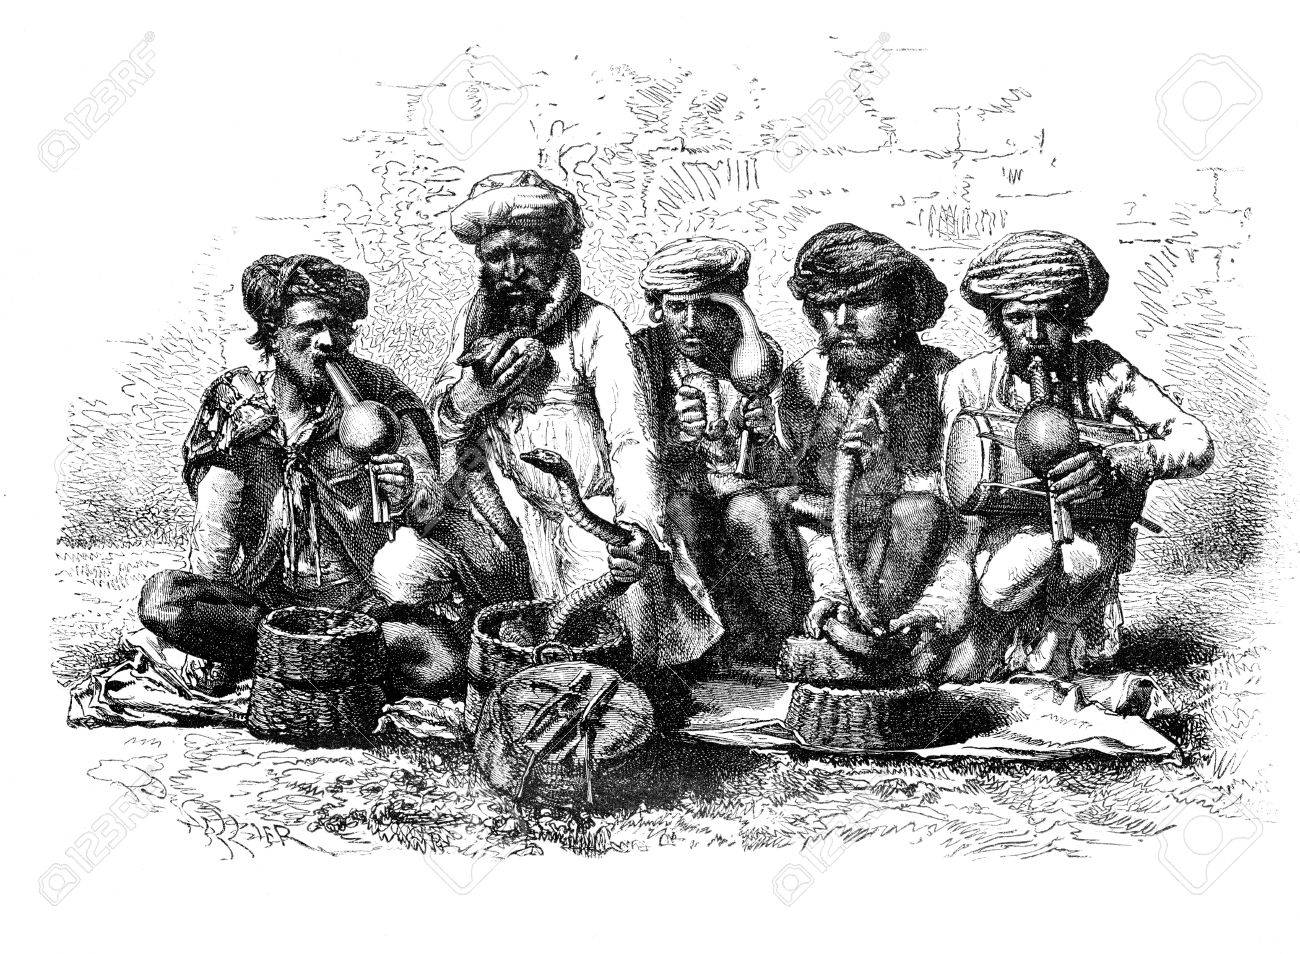 Snake charmers of India. - Drawing Sellier, vintage engraved illustration. Magasin Pittoresque 1875. Stock Illustration - 13708145